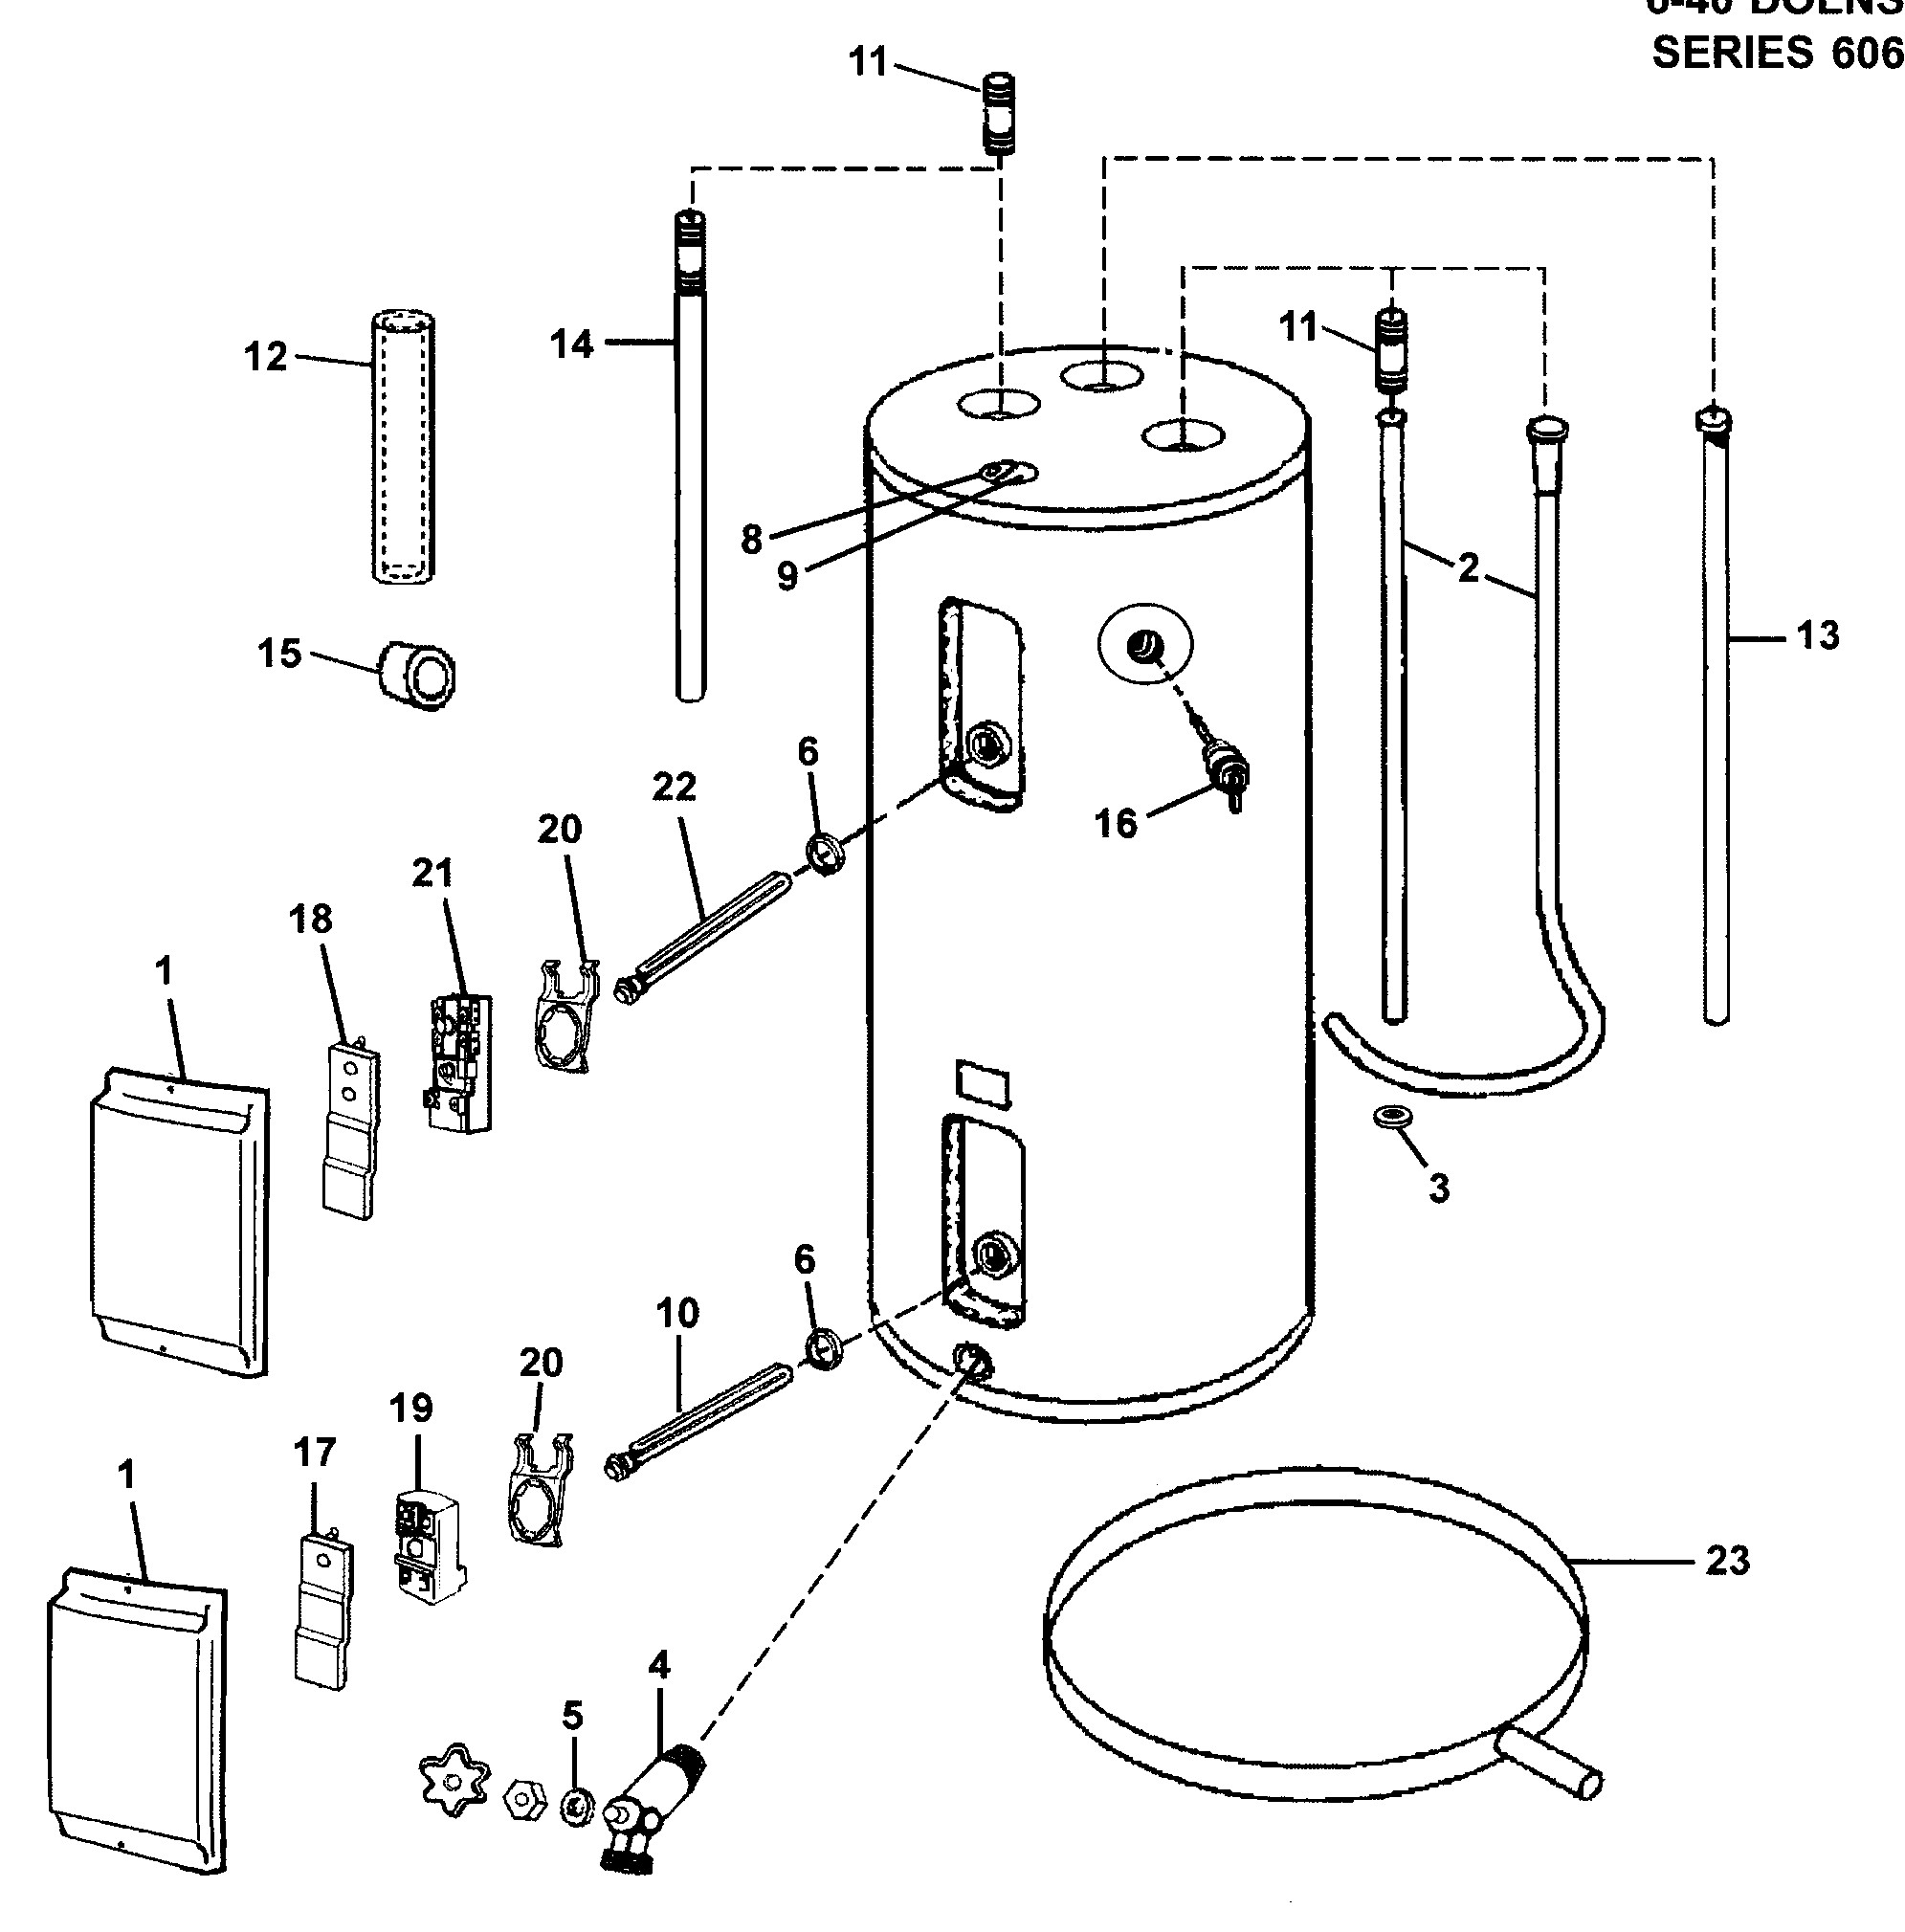 electric water heater parts diagram reliance model 640dort